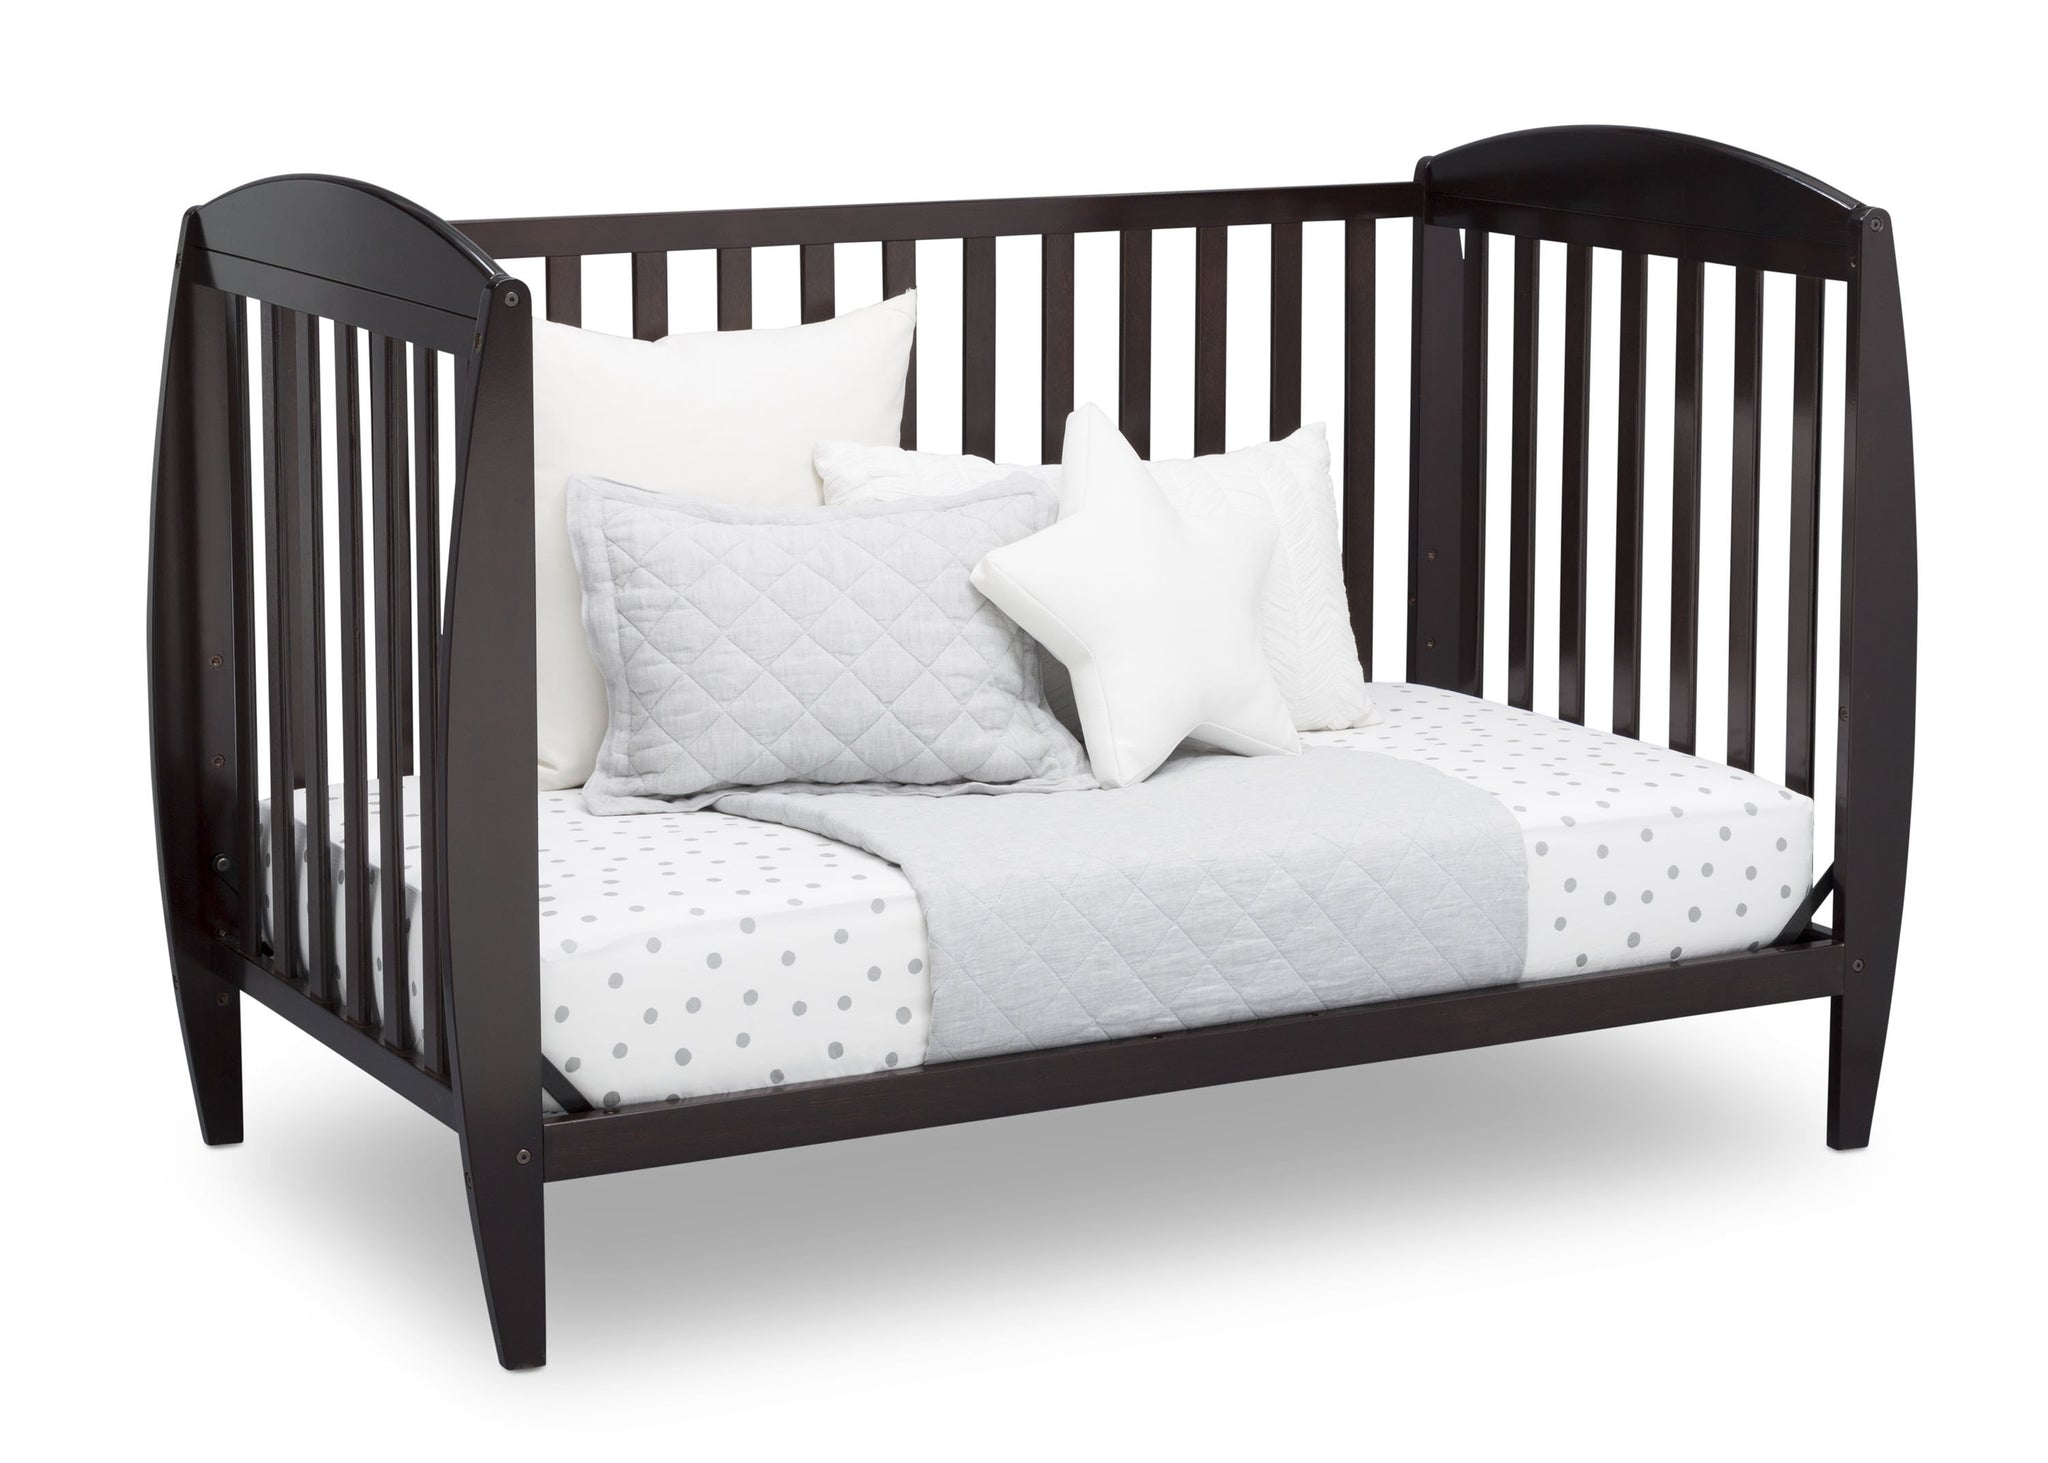 Delta Children Dark Chocolate (207) Taylor 4-in-1 Convertible Crib (W10040), Silo Daybed, c4c